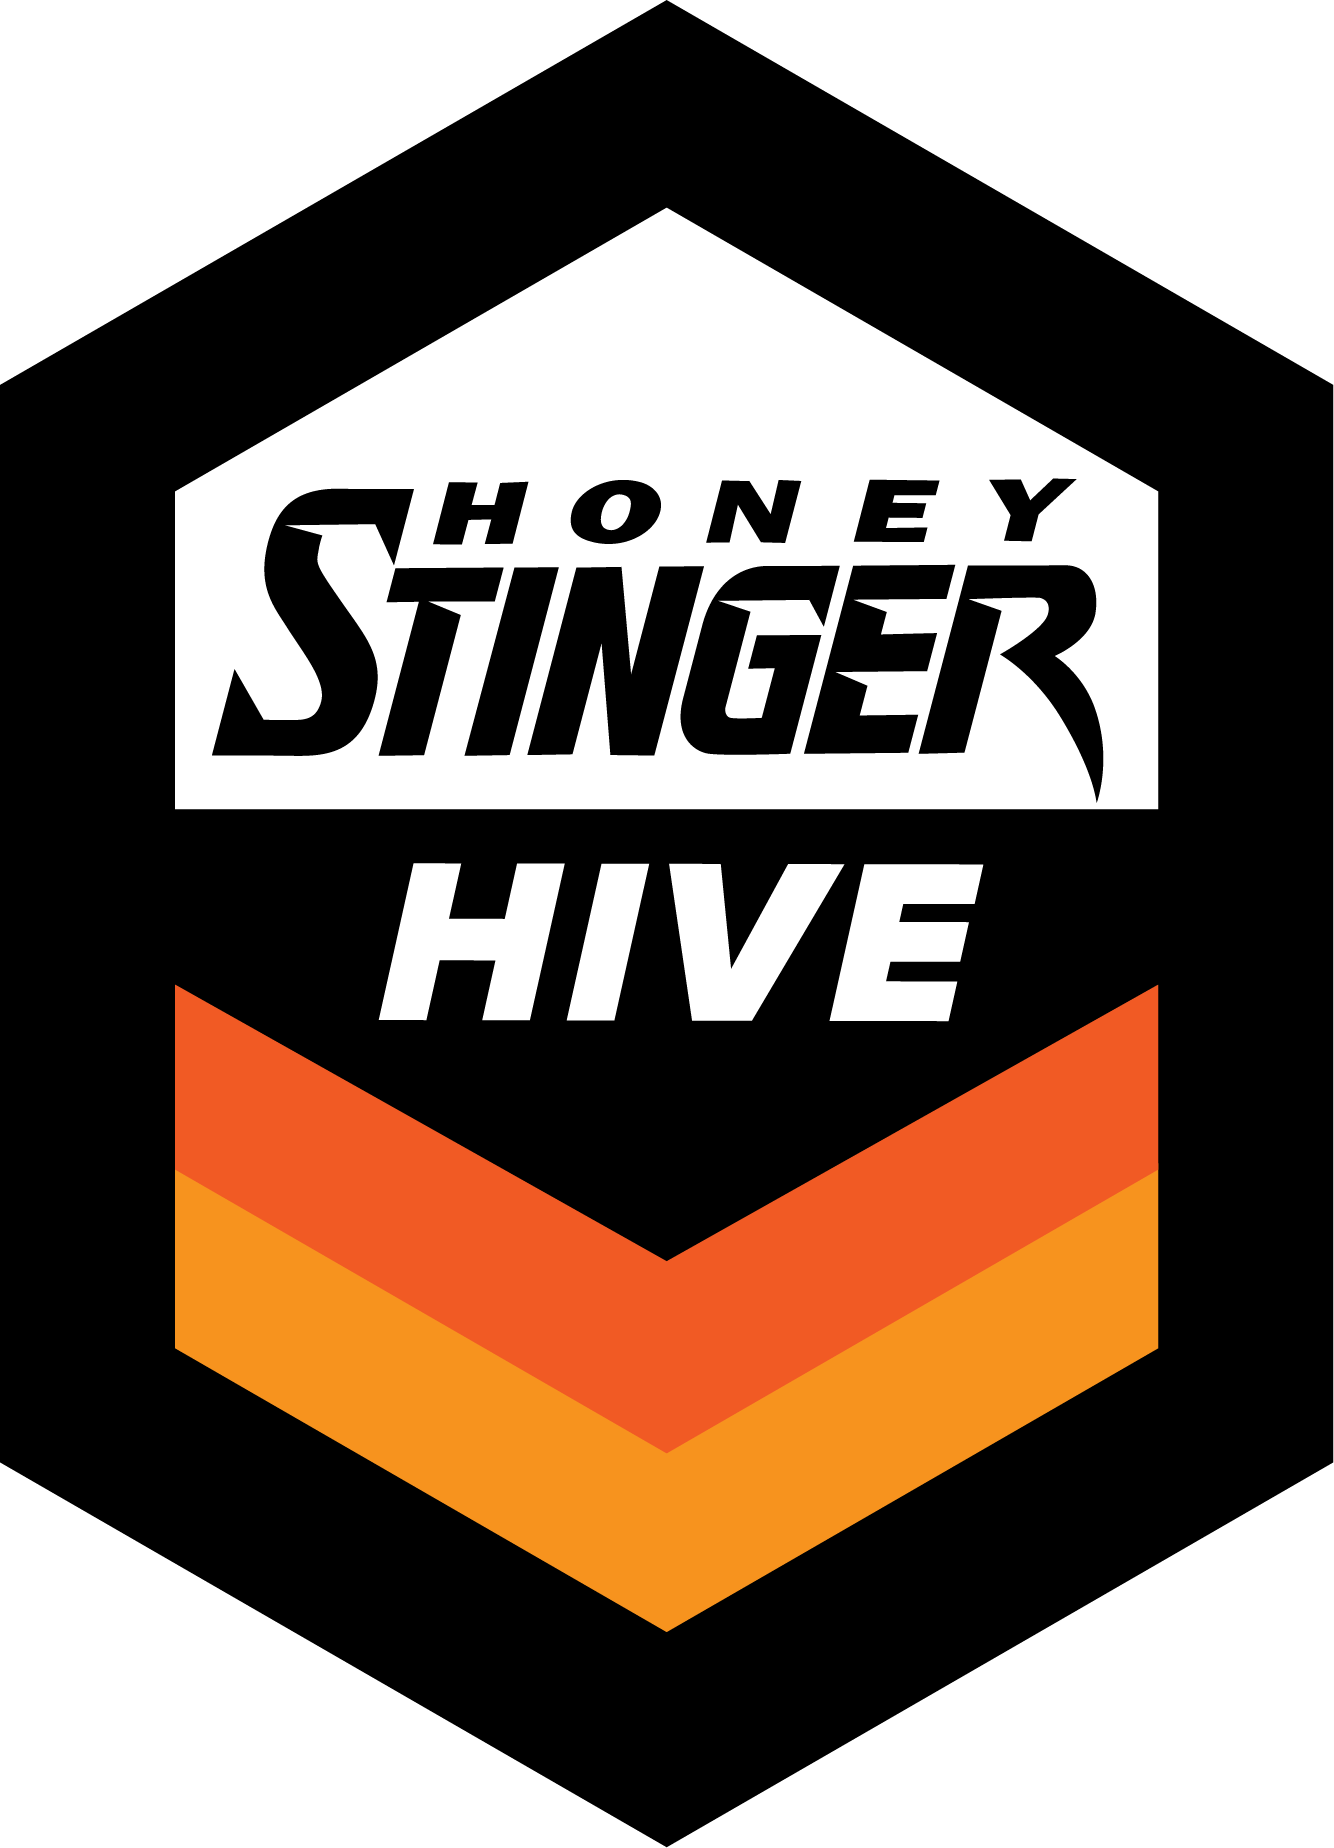 Come check us out Honey Stinger